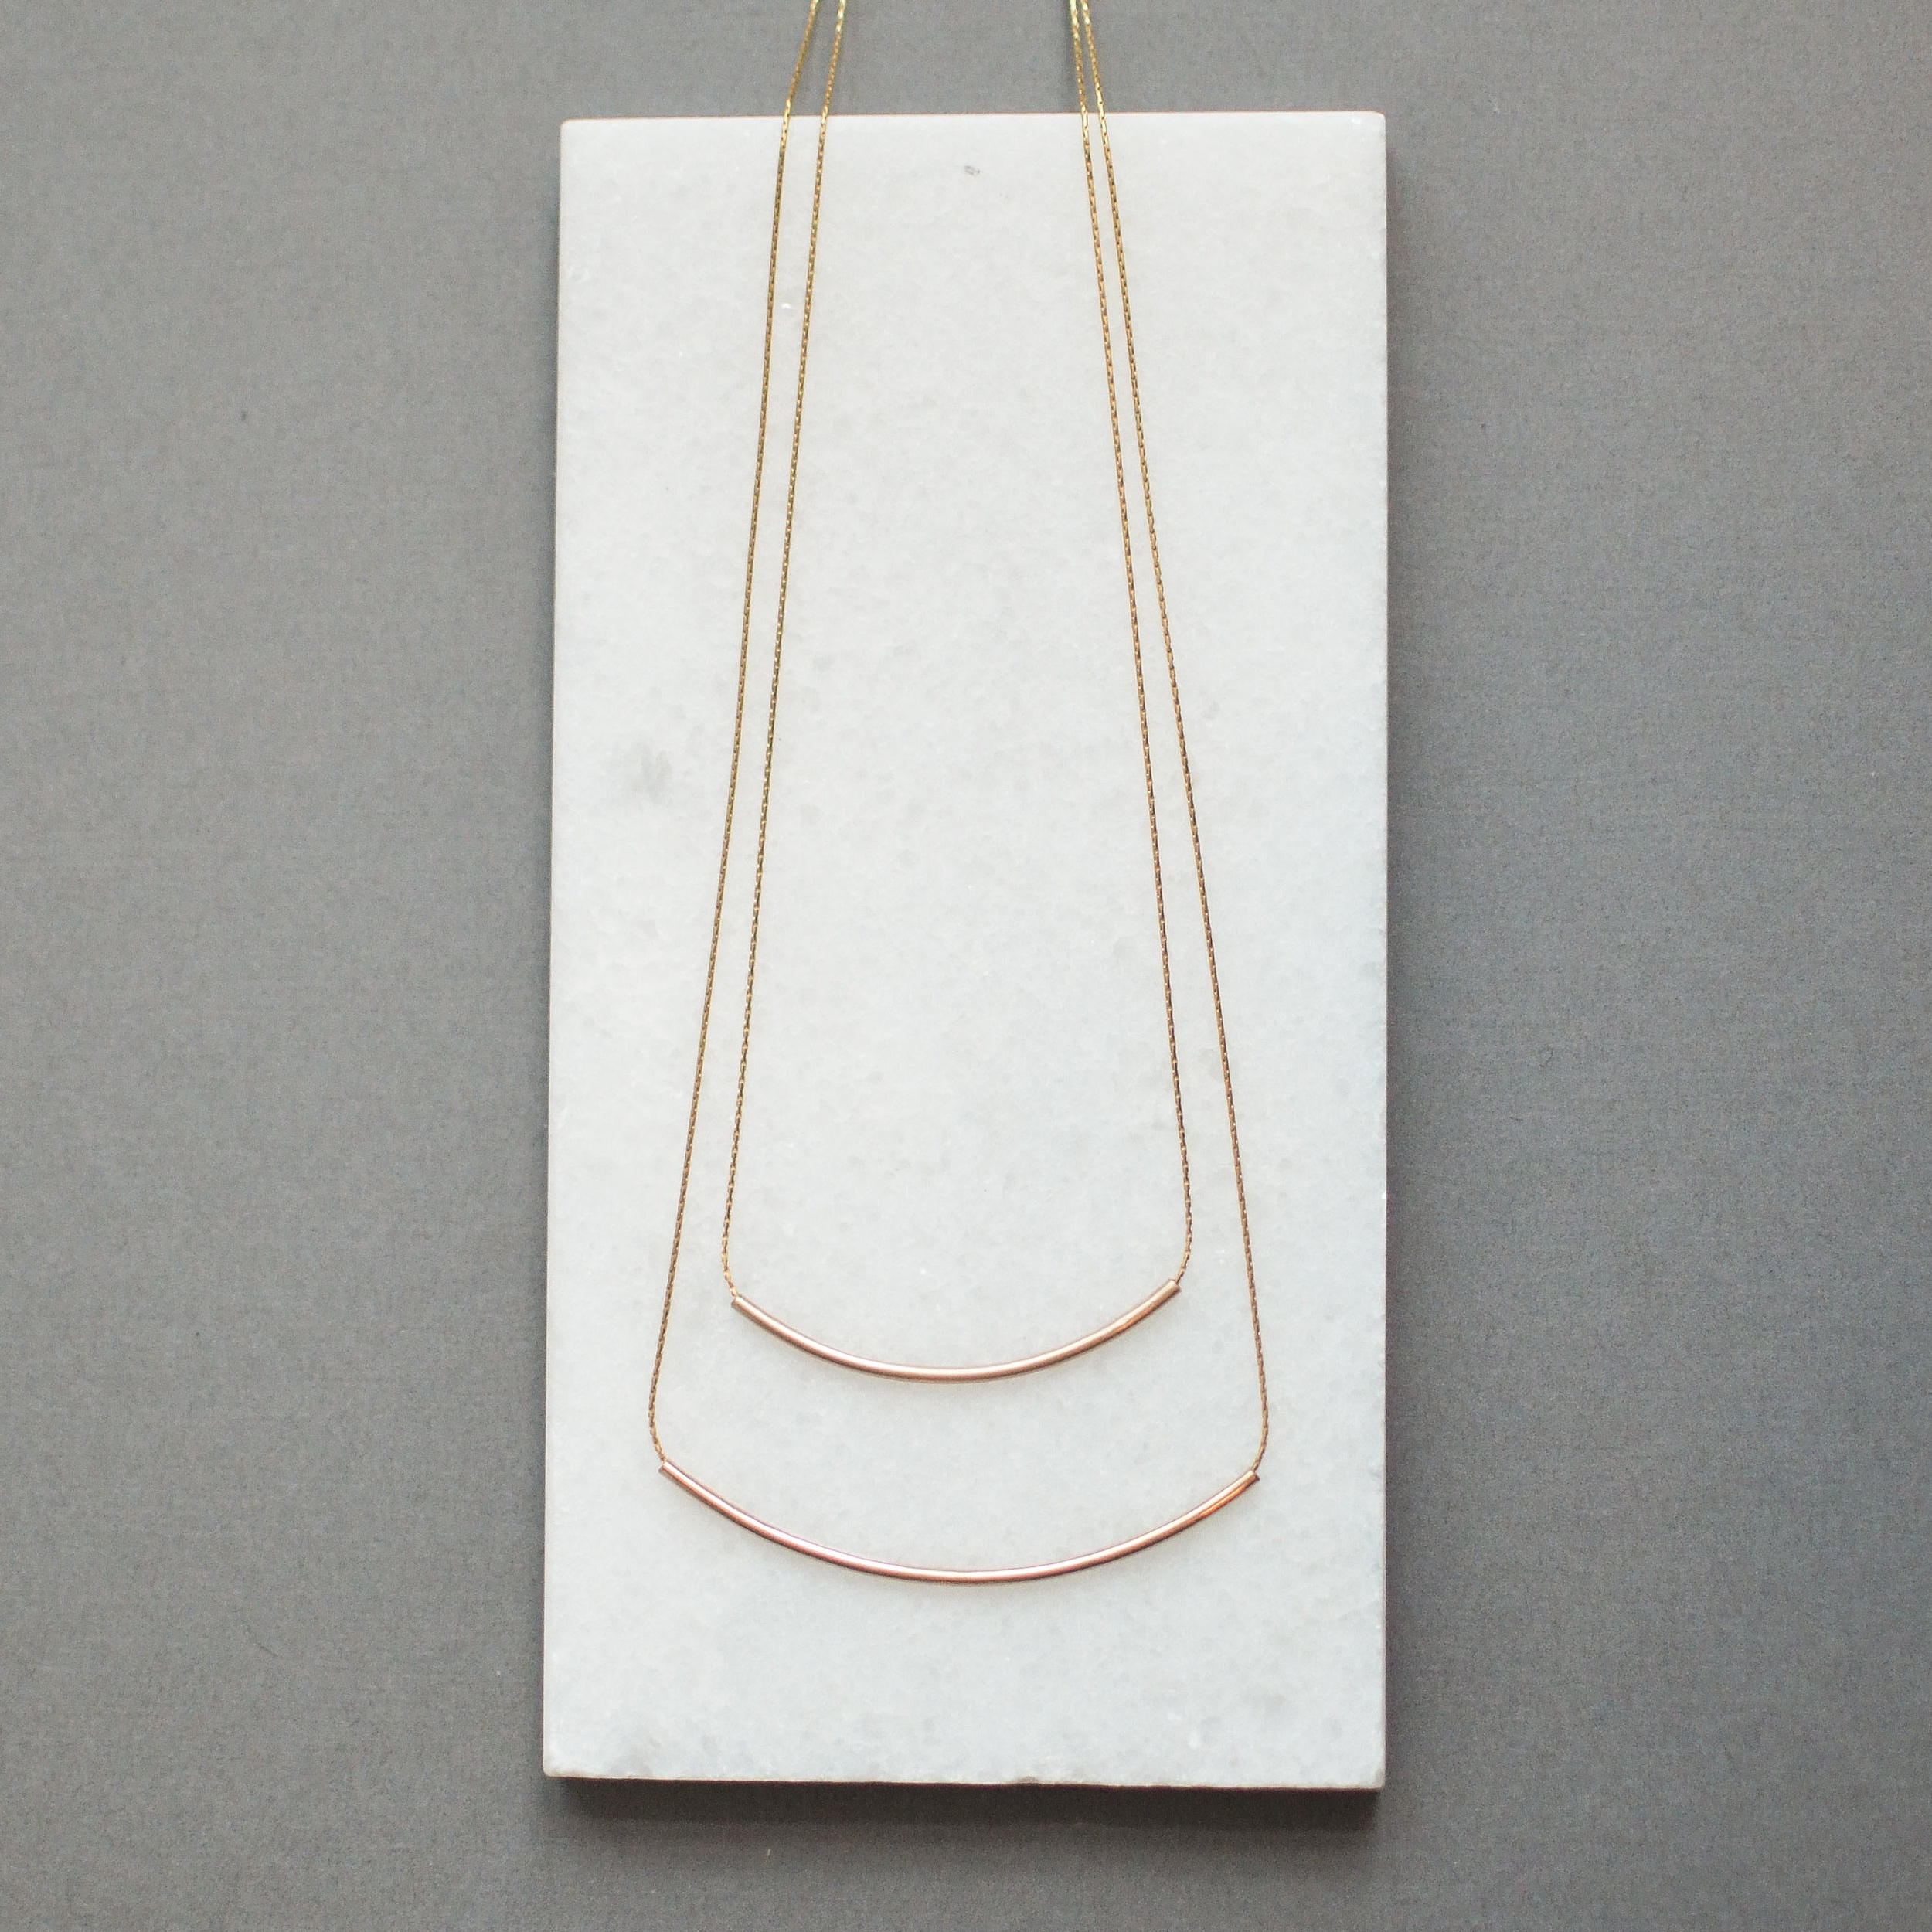 Simple Design | by Samantha McIntosh Jewelry